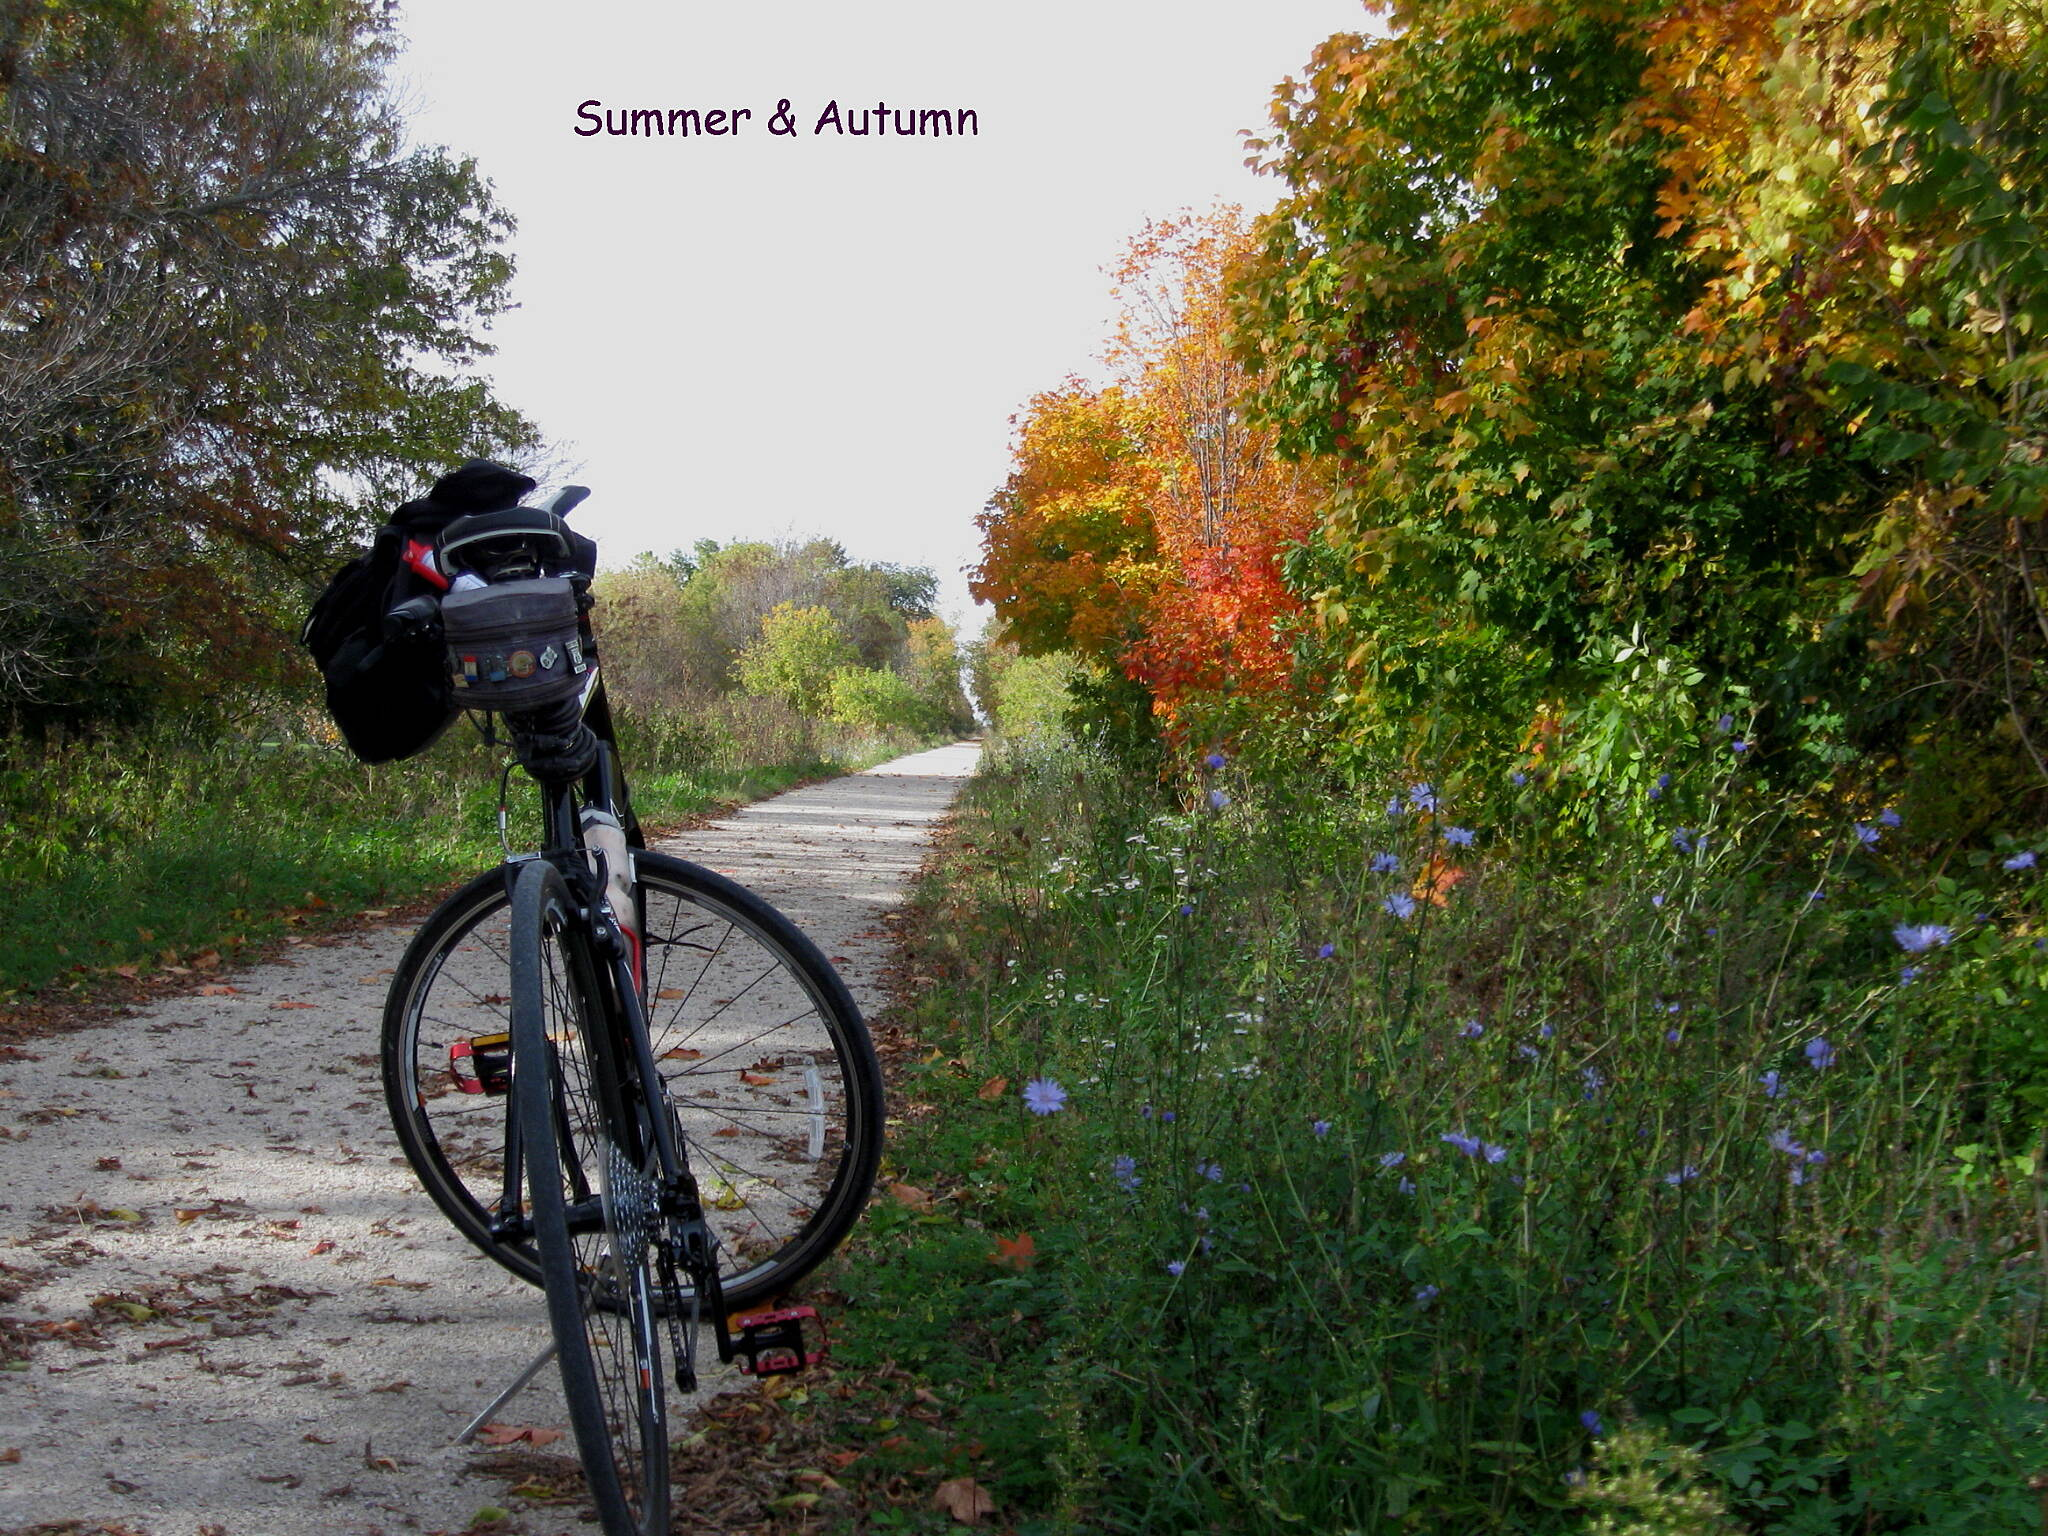 Eisenbahn State Trail Summer & Autumn